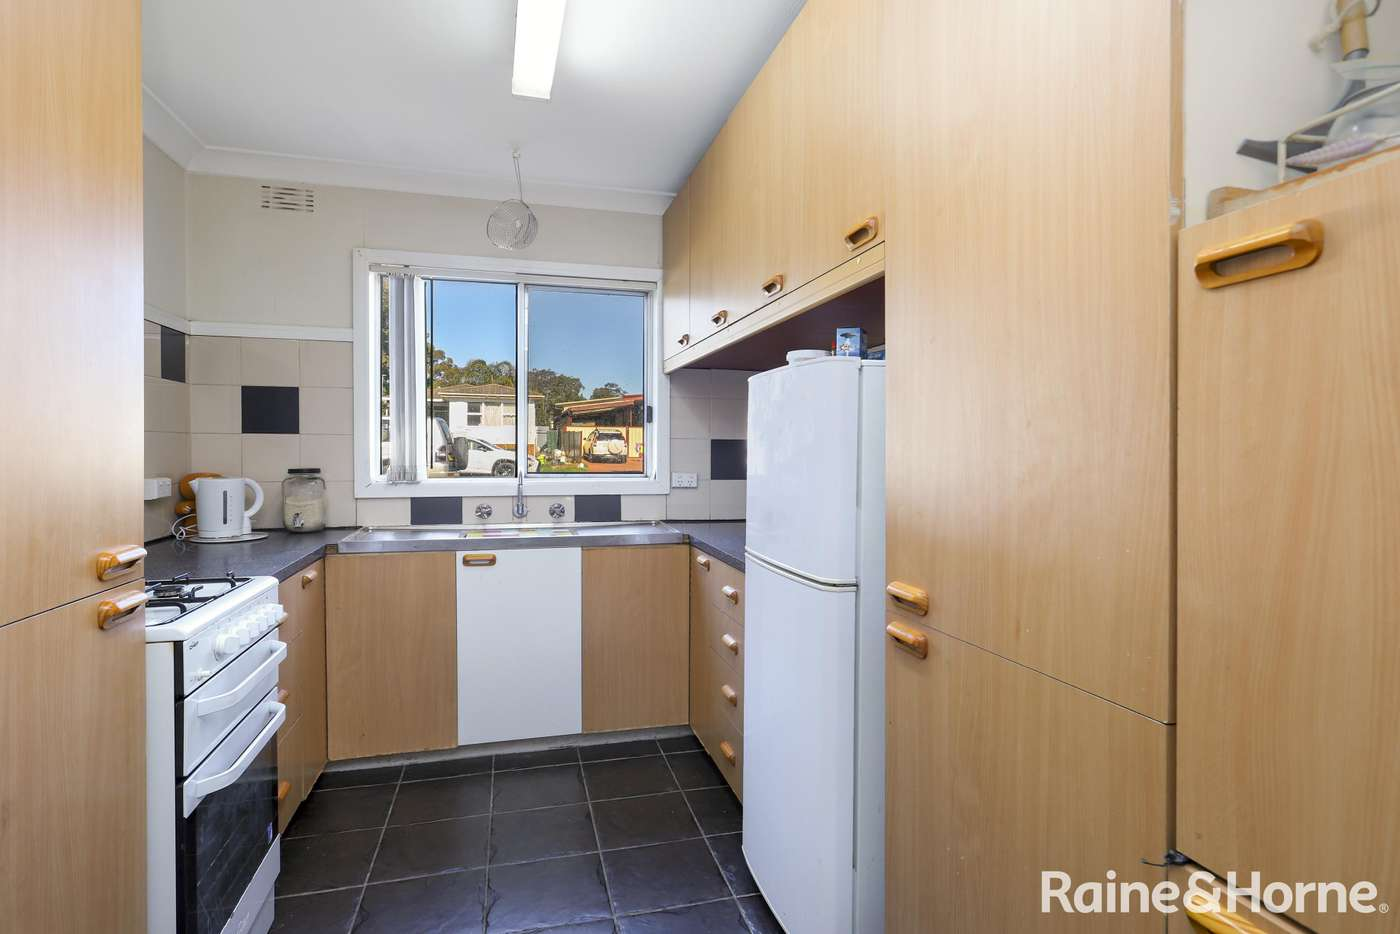 Fifth view of Homely house listing, 2 Archer Street, Mount Druitt NSW 2770